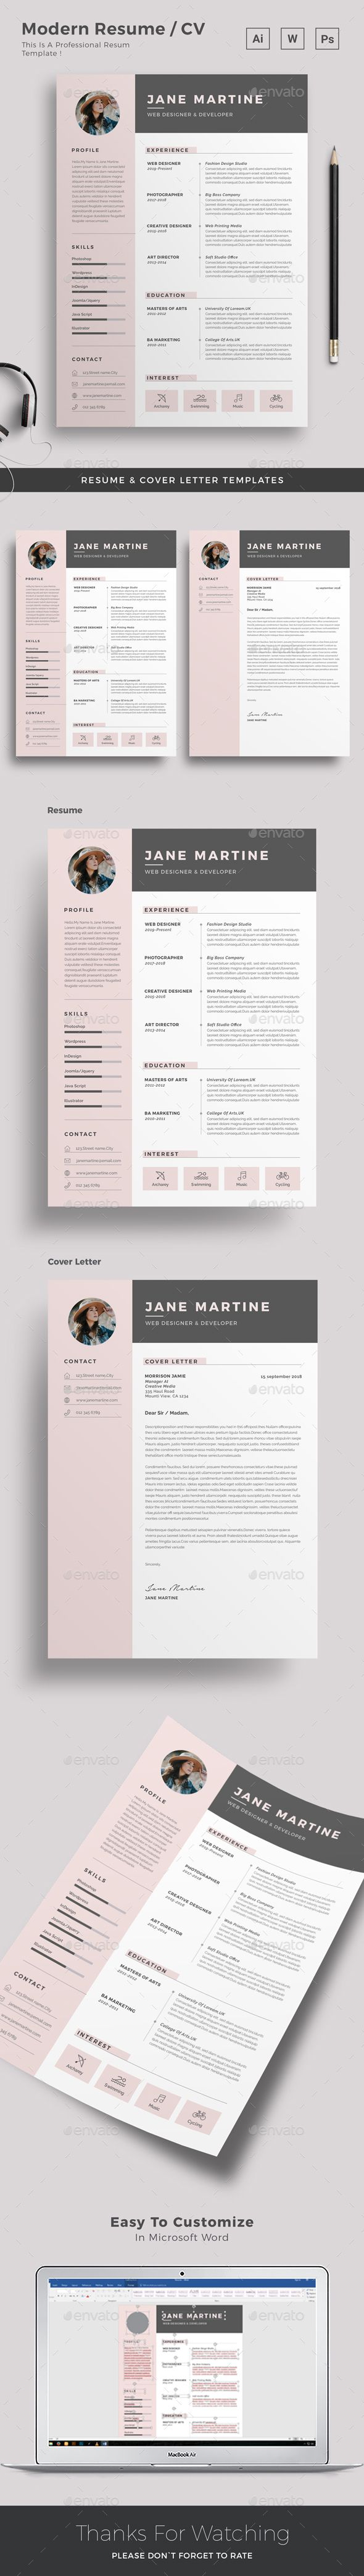 133 best bewerbungen images on Pinterest | Resume, Charts and ...